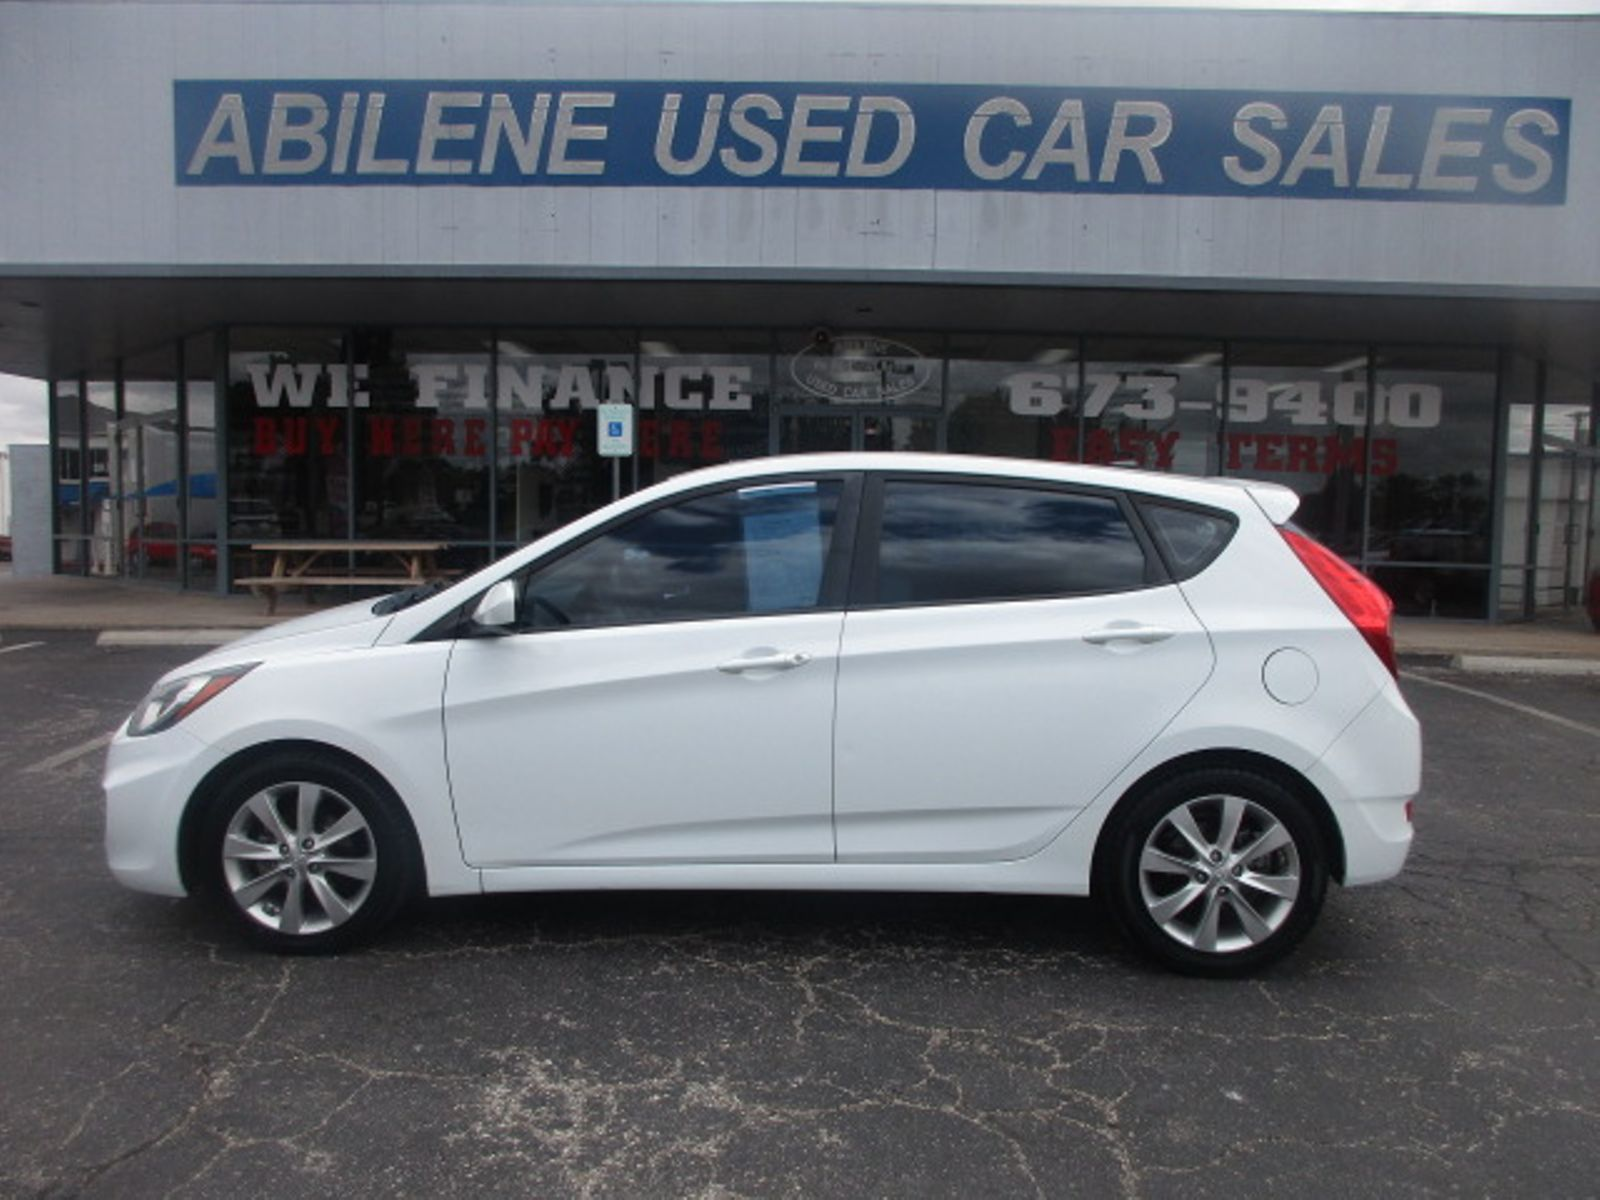 2012 Hyundai Accent 5 Door SE Abilene TX Abilene Used Car Sales